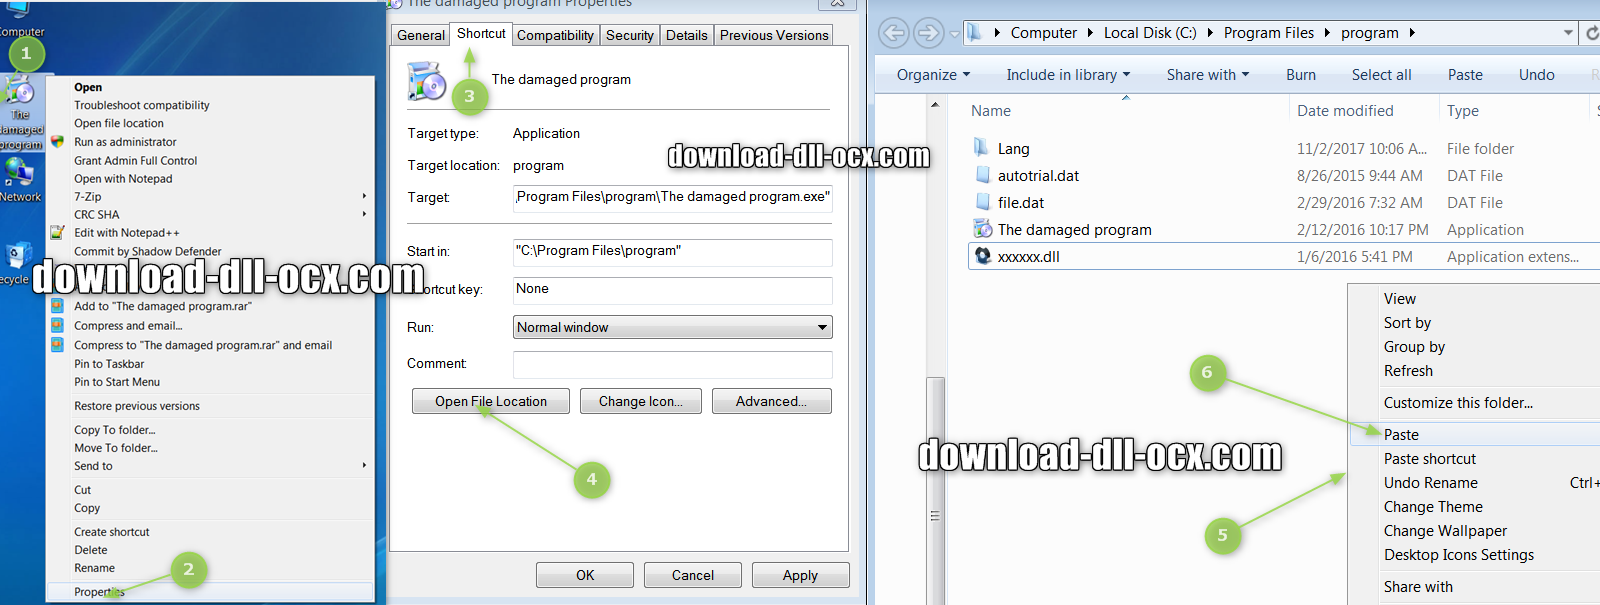 how to install Libpixbufloader-tga.dll file? for fix missing